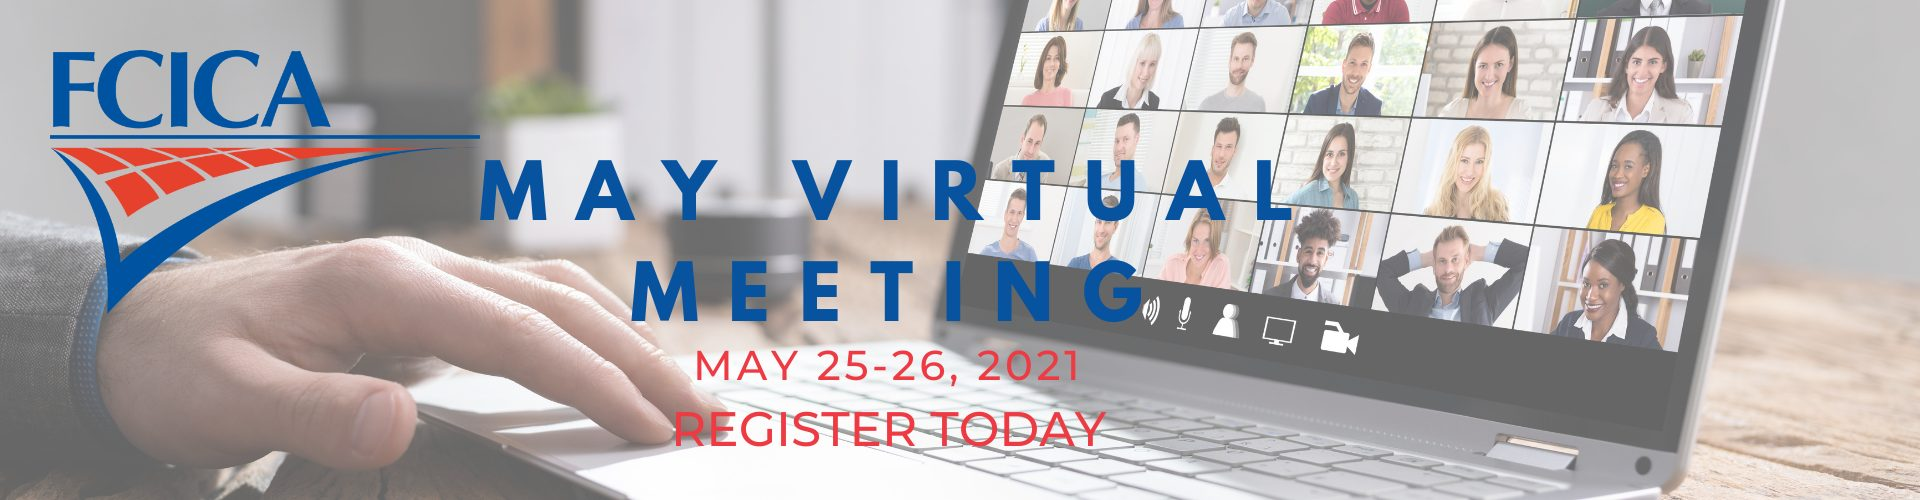 FCICA May Virtual Meeting 2021 Web Banner